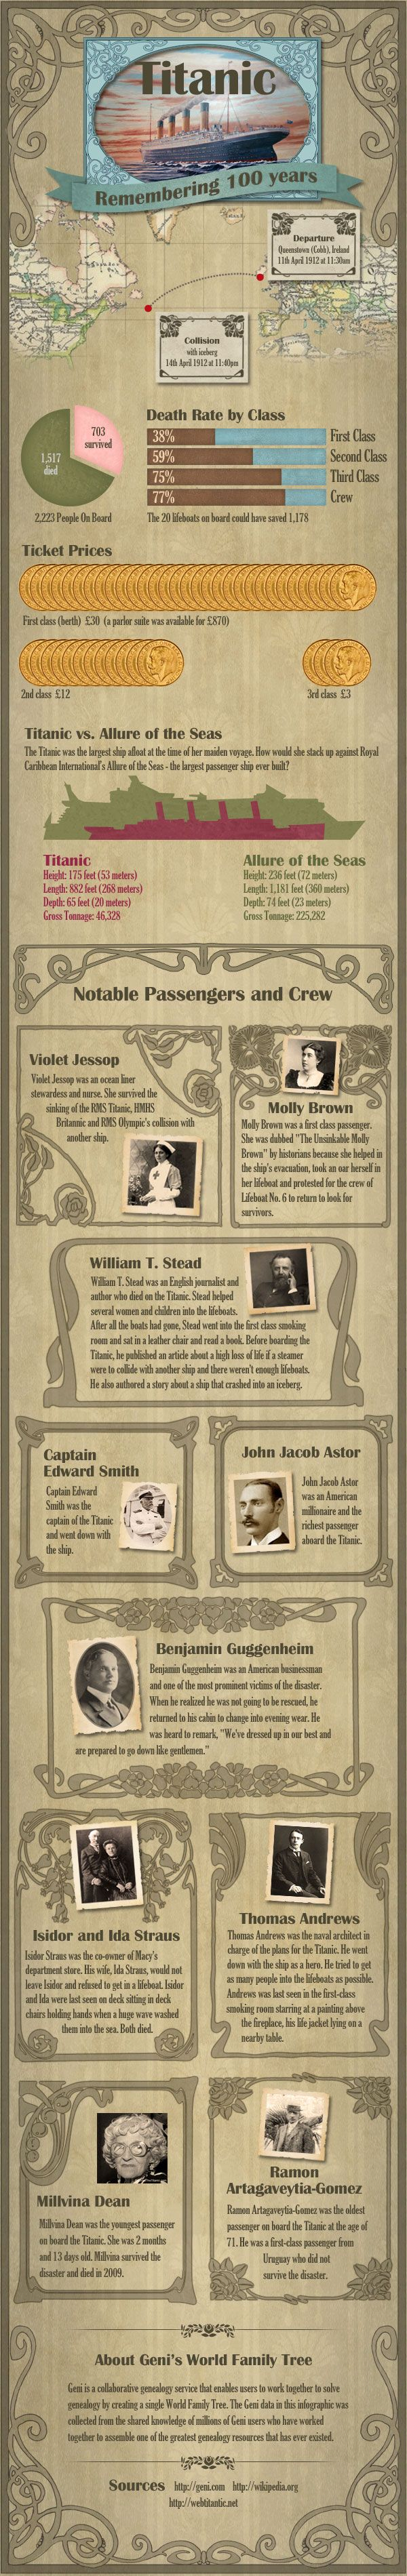 Geni.com marks the 100th anniversary of the Titanic with an informative infographic.